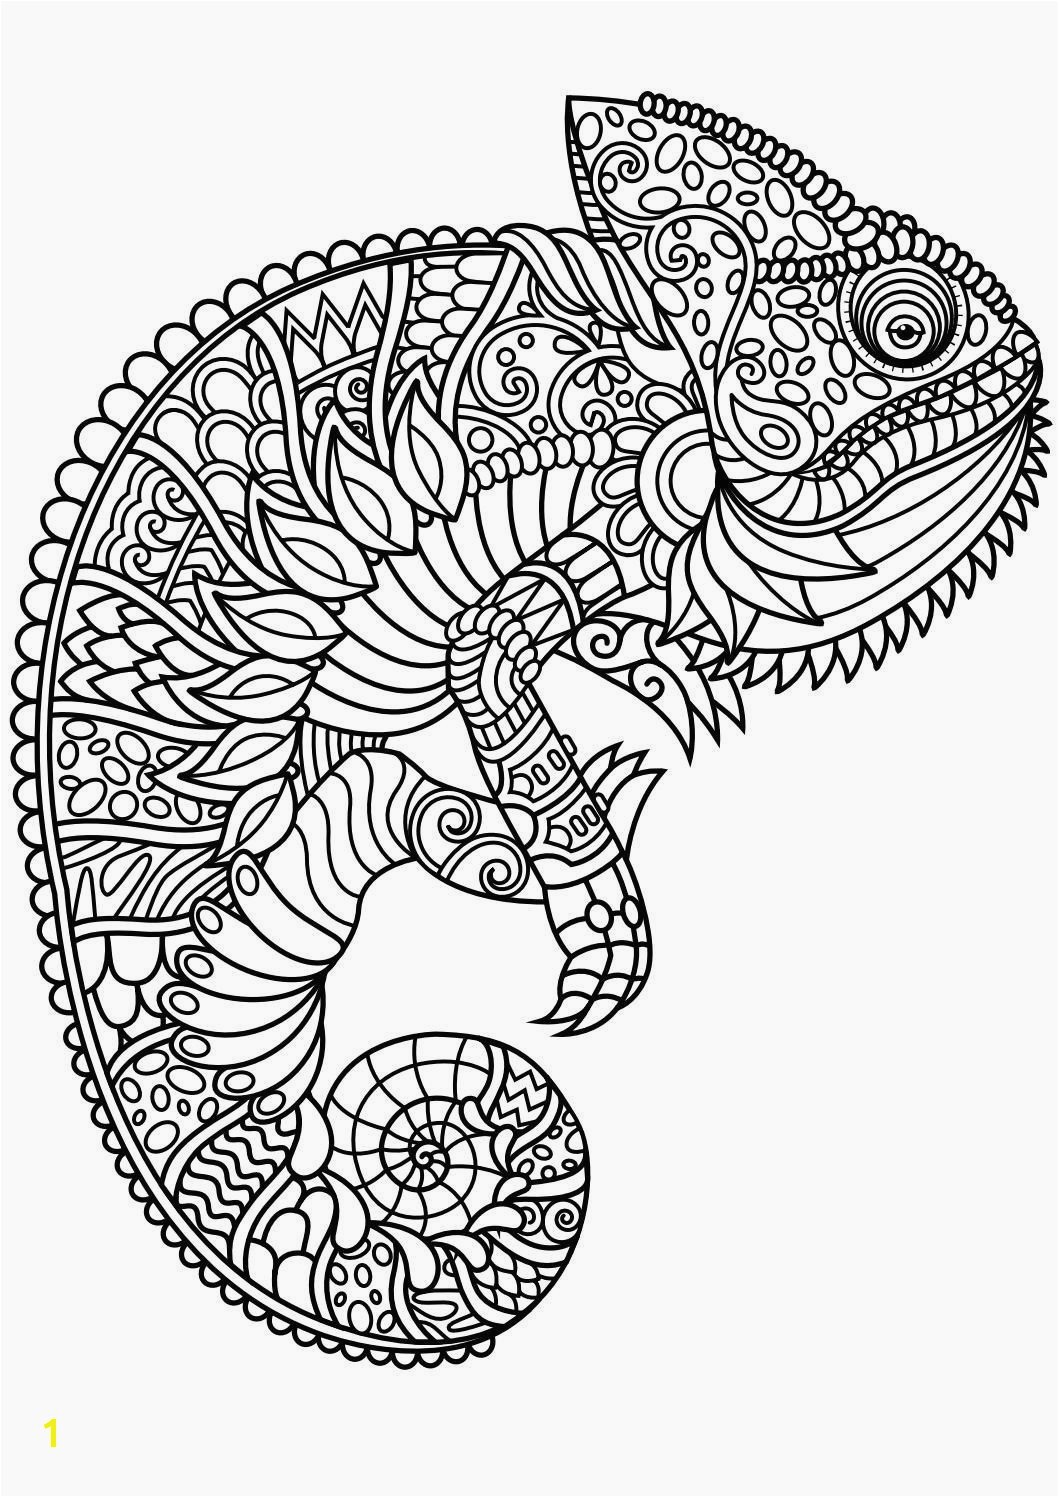 Mandala Coloring Pages Free Printable Beautiful Best Od Dog Coloringfree Printable Mandalas Coloring Pages Adults